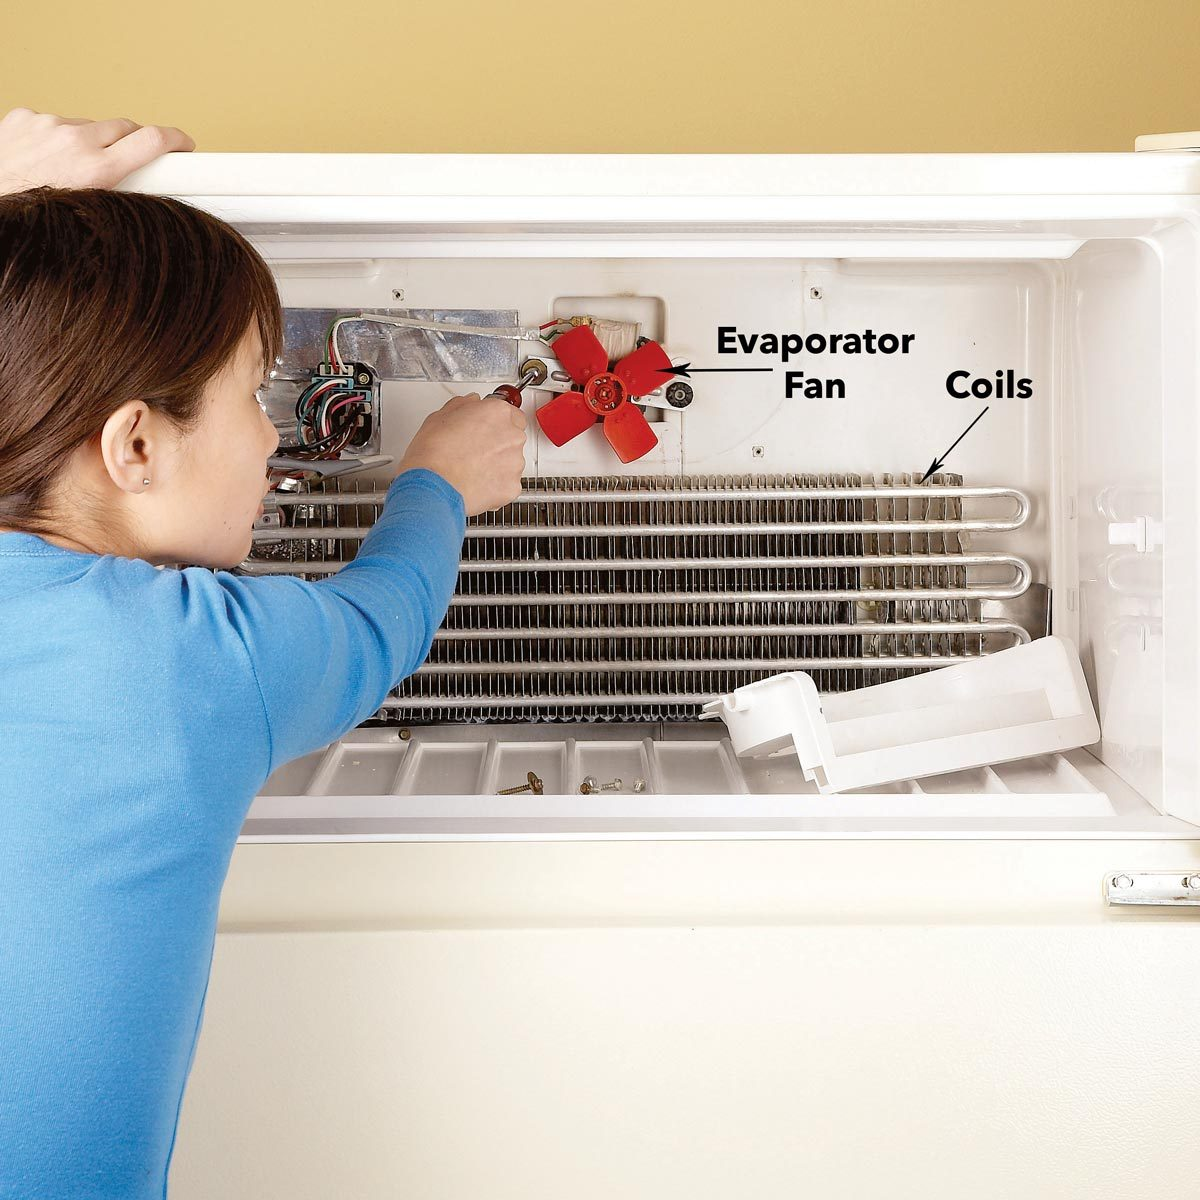 Refrigerator Not Cooling Fix Refrigerator Problems The